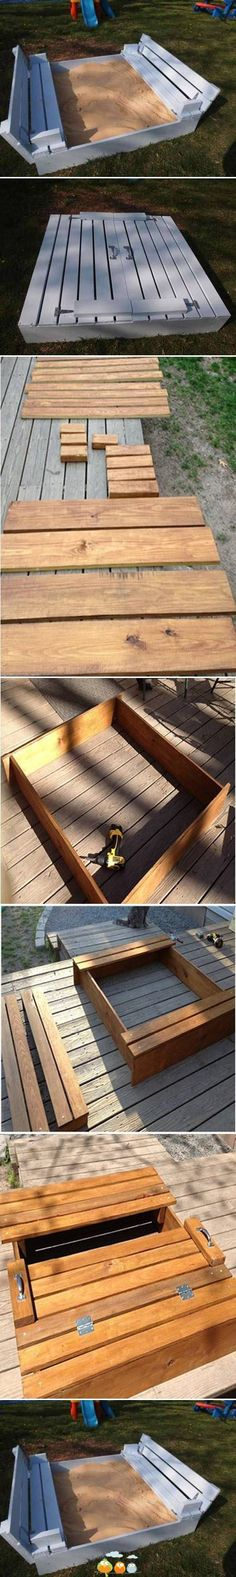 wood pallet sandbox, with bench seats that unfold to cover the sandbox...very cleaver: